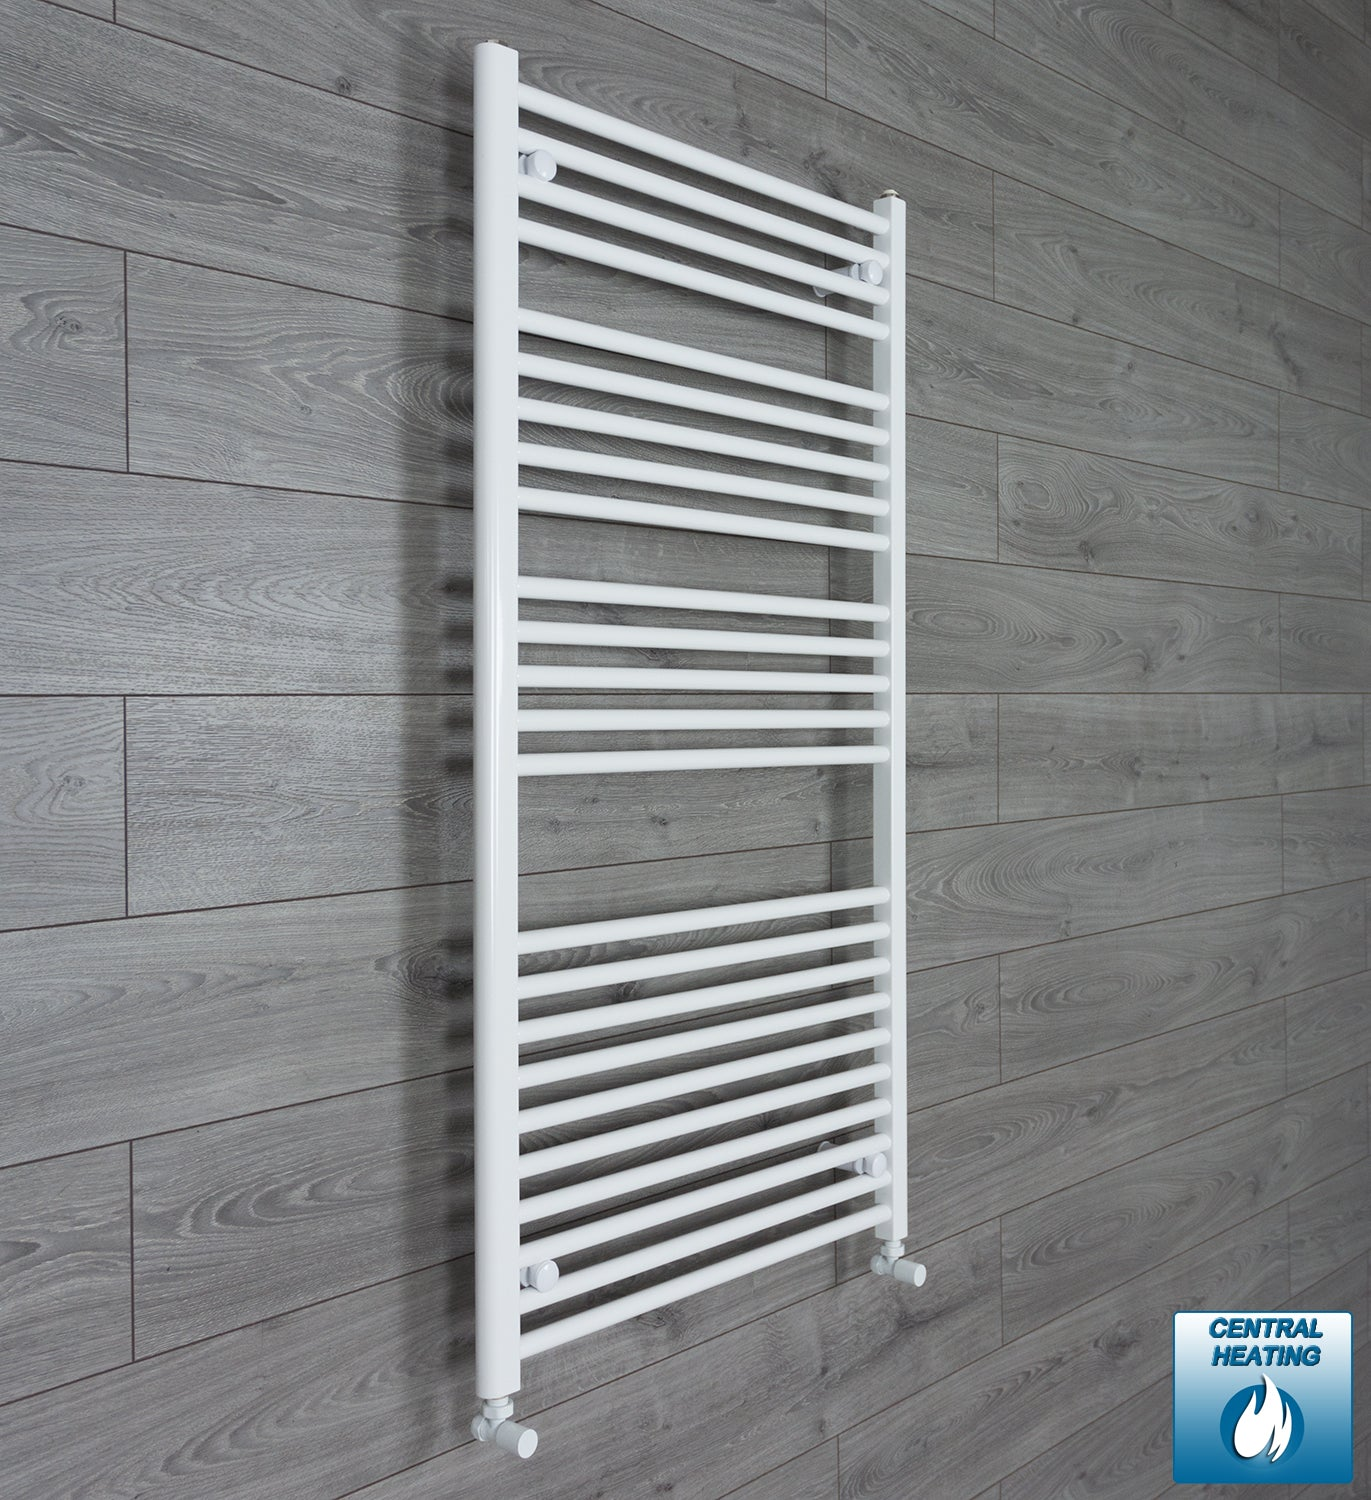 750mm Wide 1300mm High White Towel Rail Radiator With Angled Valve